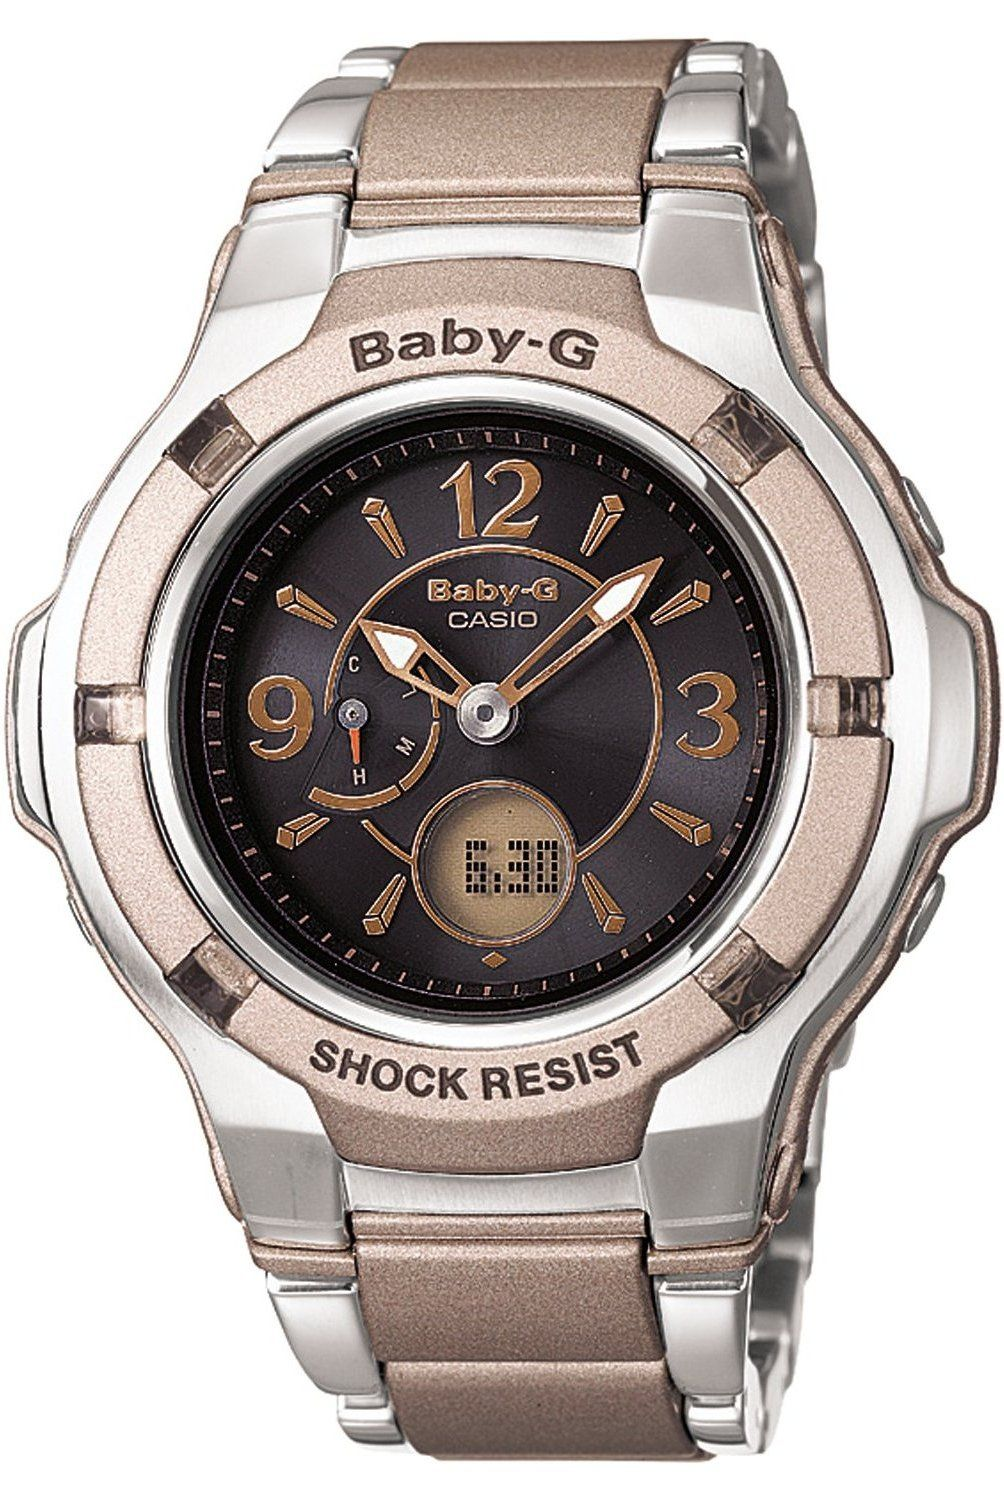 Casio Baby-G Composite Line Tough Solar Radio-Controlled Watch Multiband 6  BGA-1200C-5BJF Women s Watch Japan import 657c76dad3